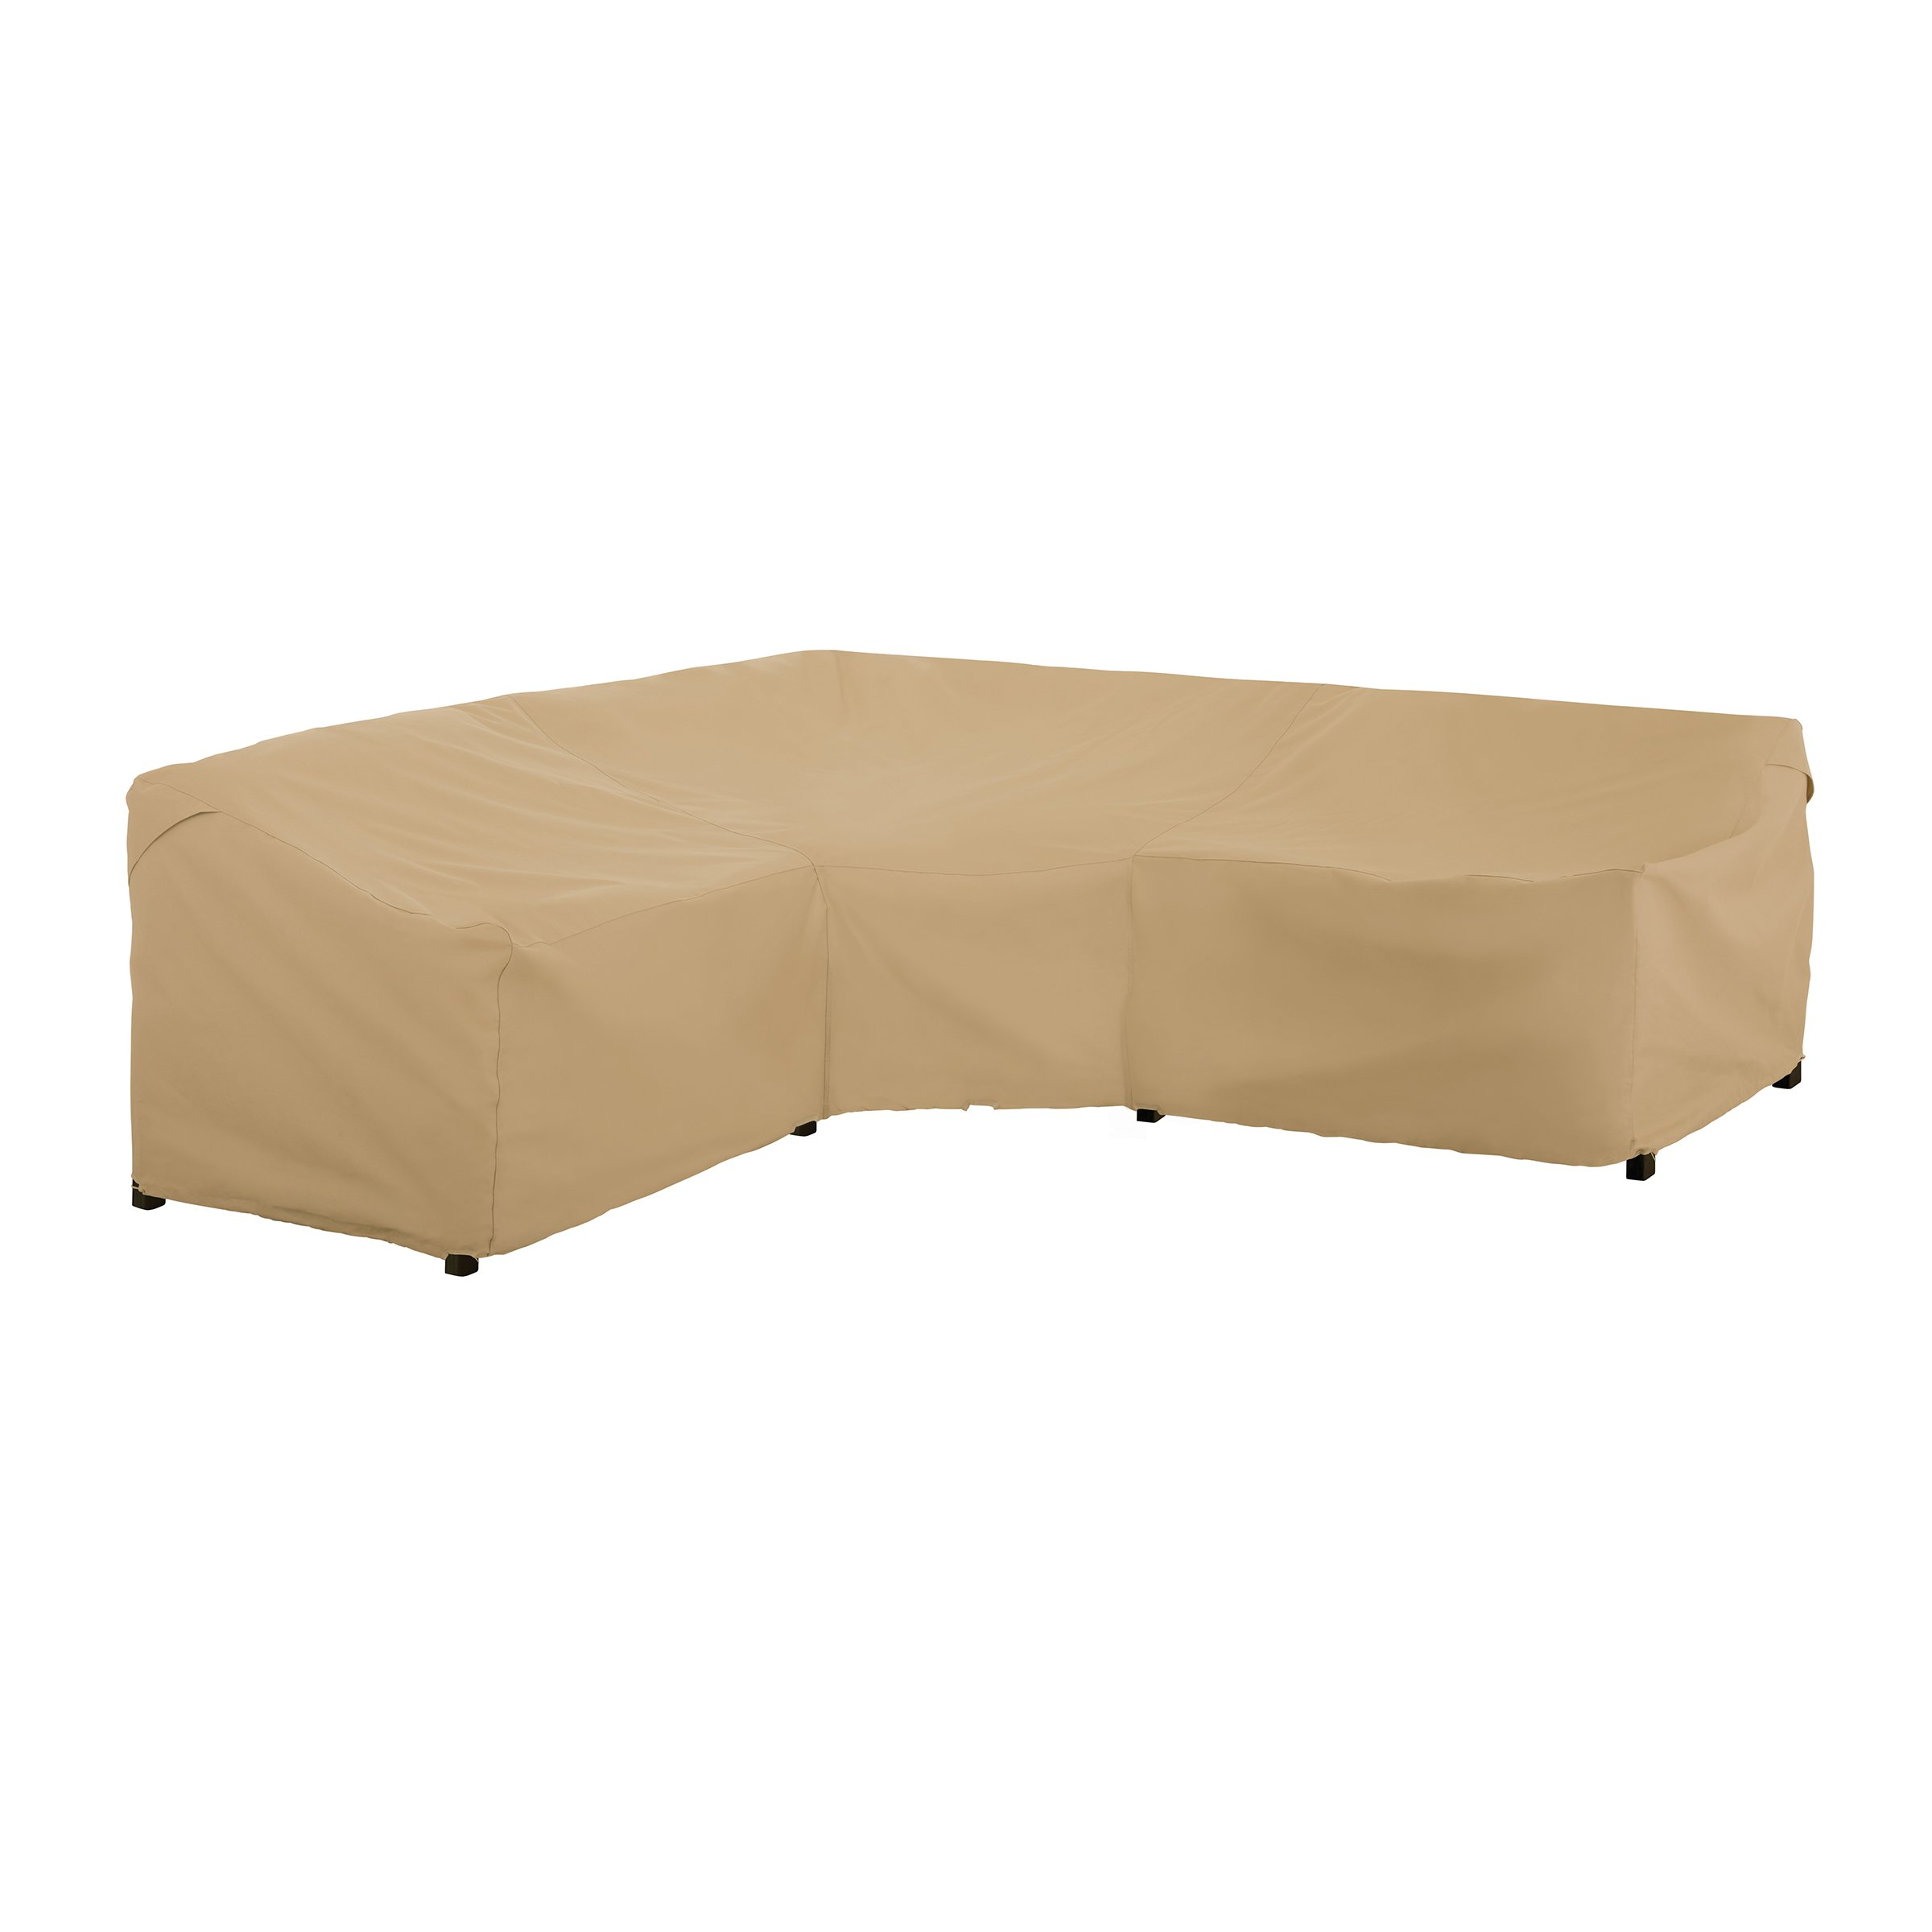 Classic Accessories Terrazzo Patio V-Shaped Sectional Sofa Cover, V-Shaped by Classic Accessories